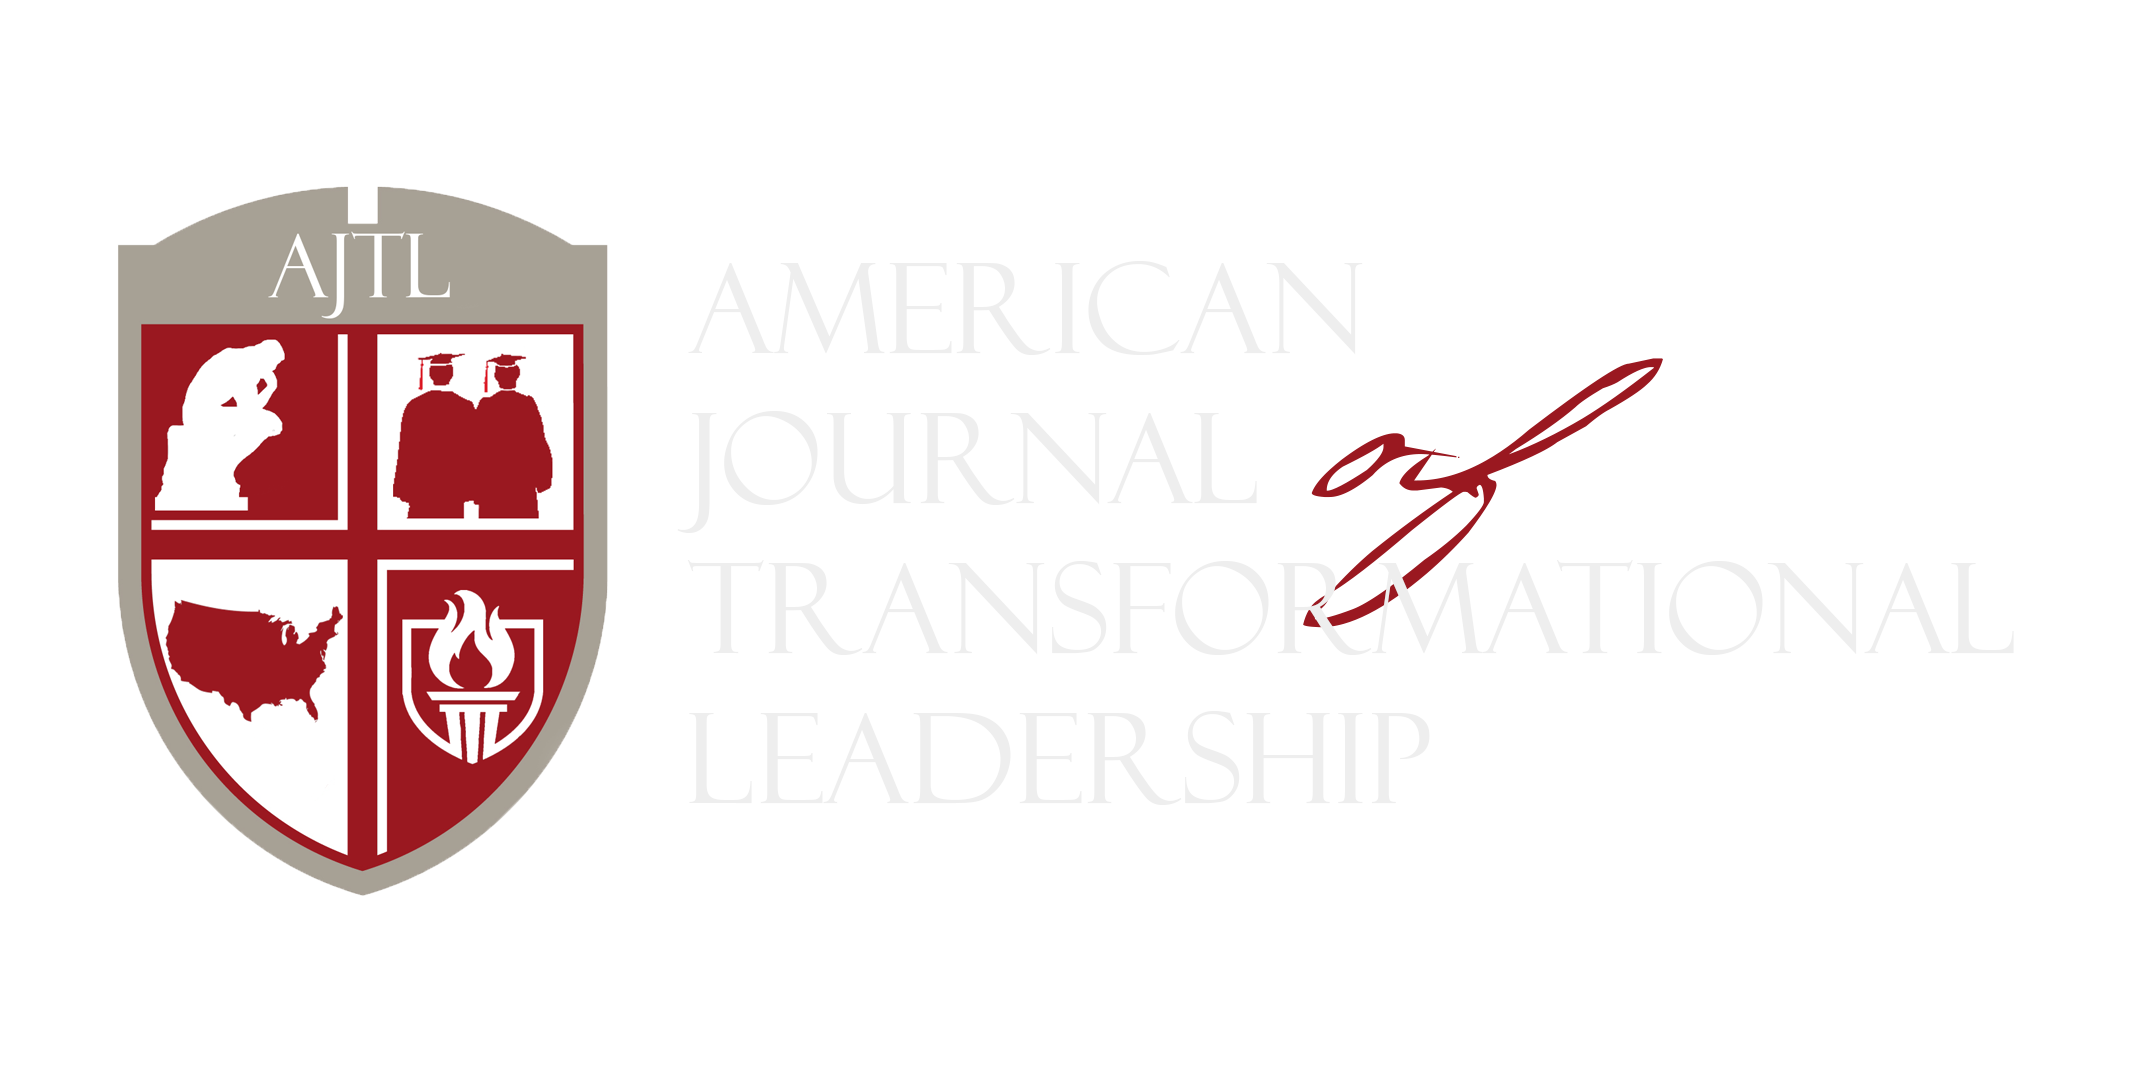 American Journal of Transformational Leadership